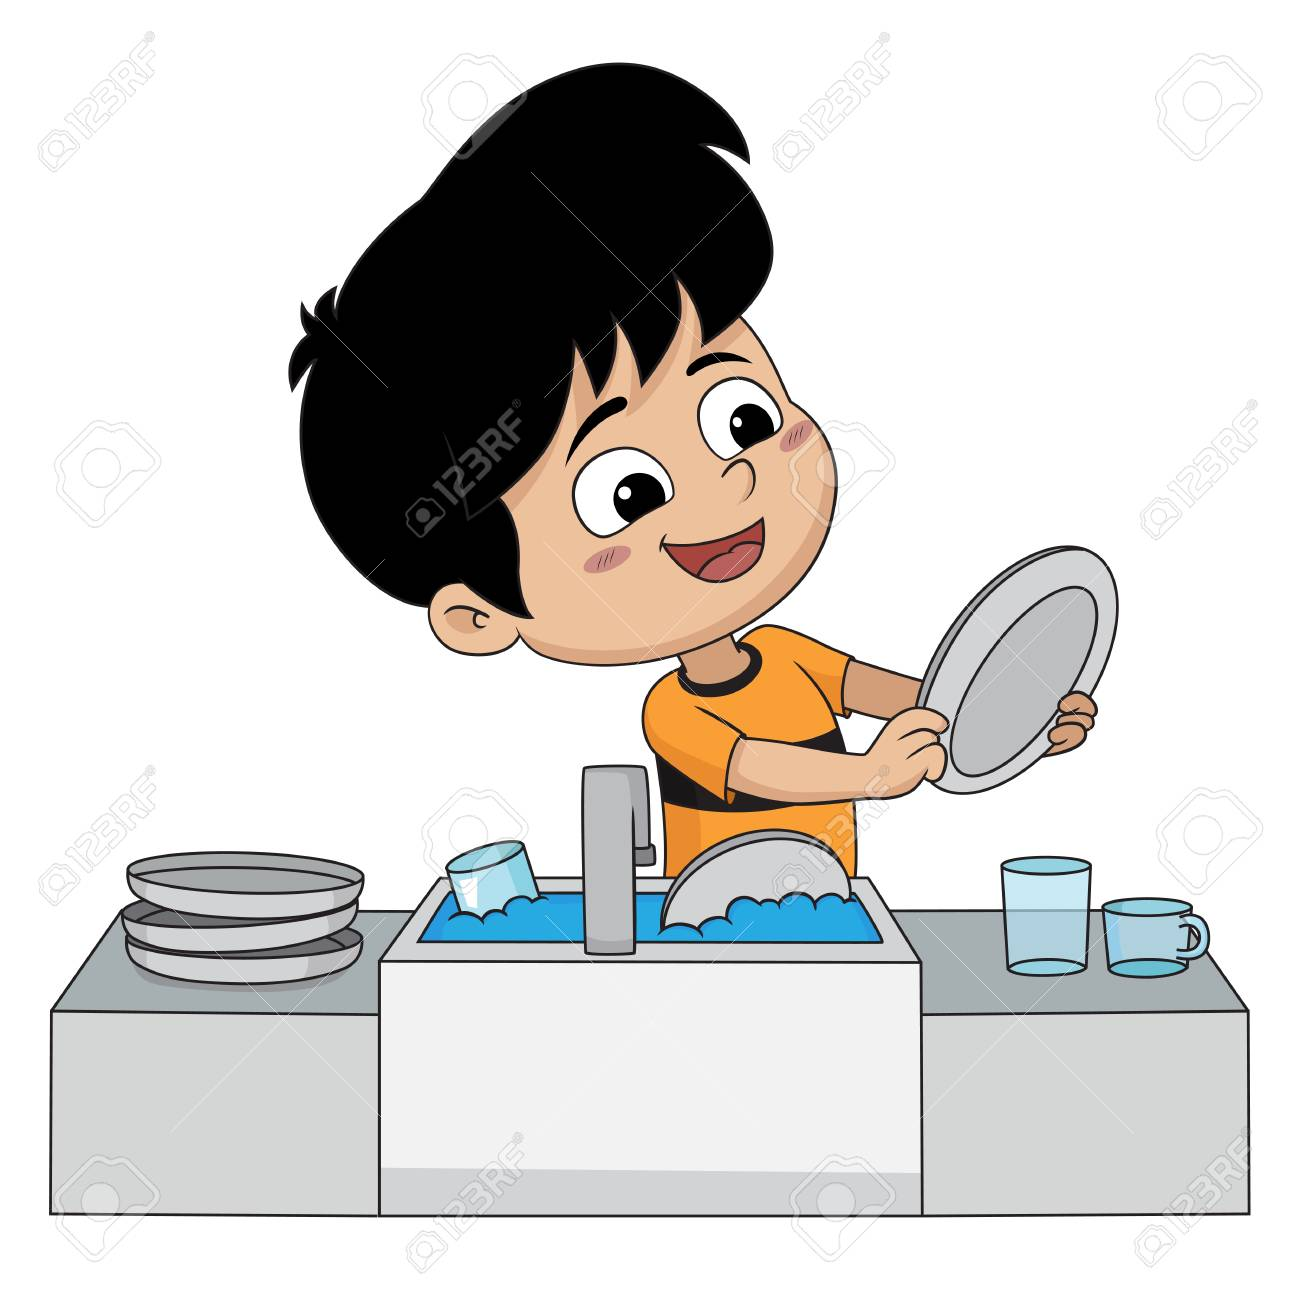 To do the dishes clipart graphic transparent library To do clipart dish - 92 transparent clip arts, images and ... graphic transparent library